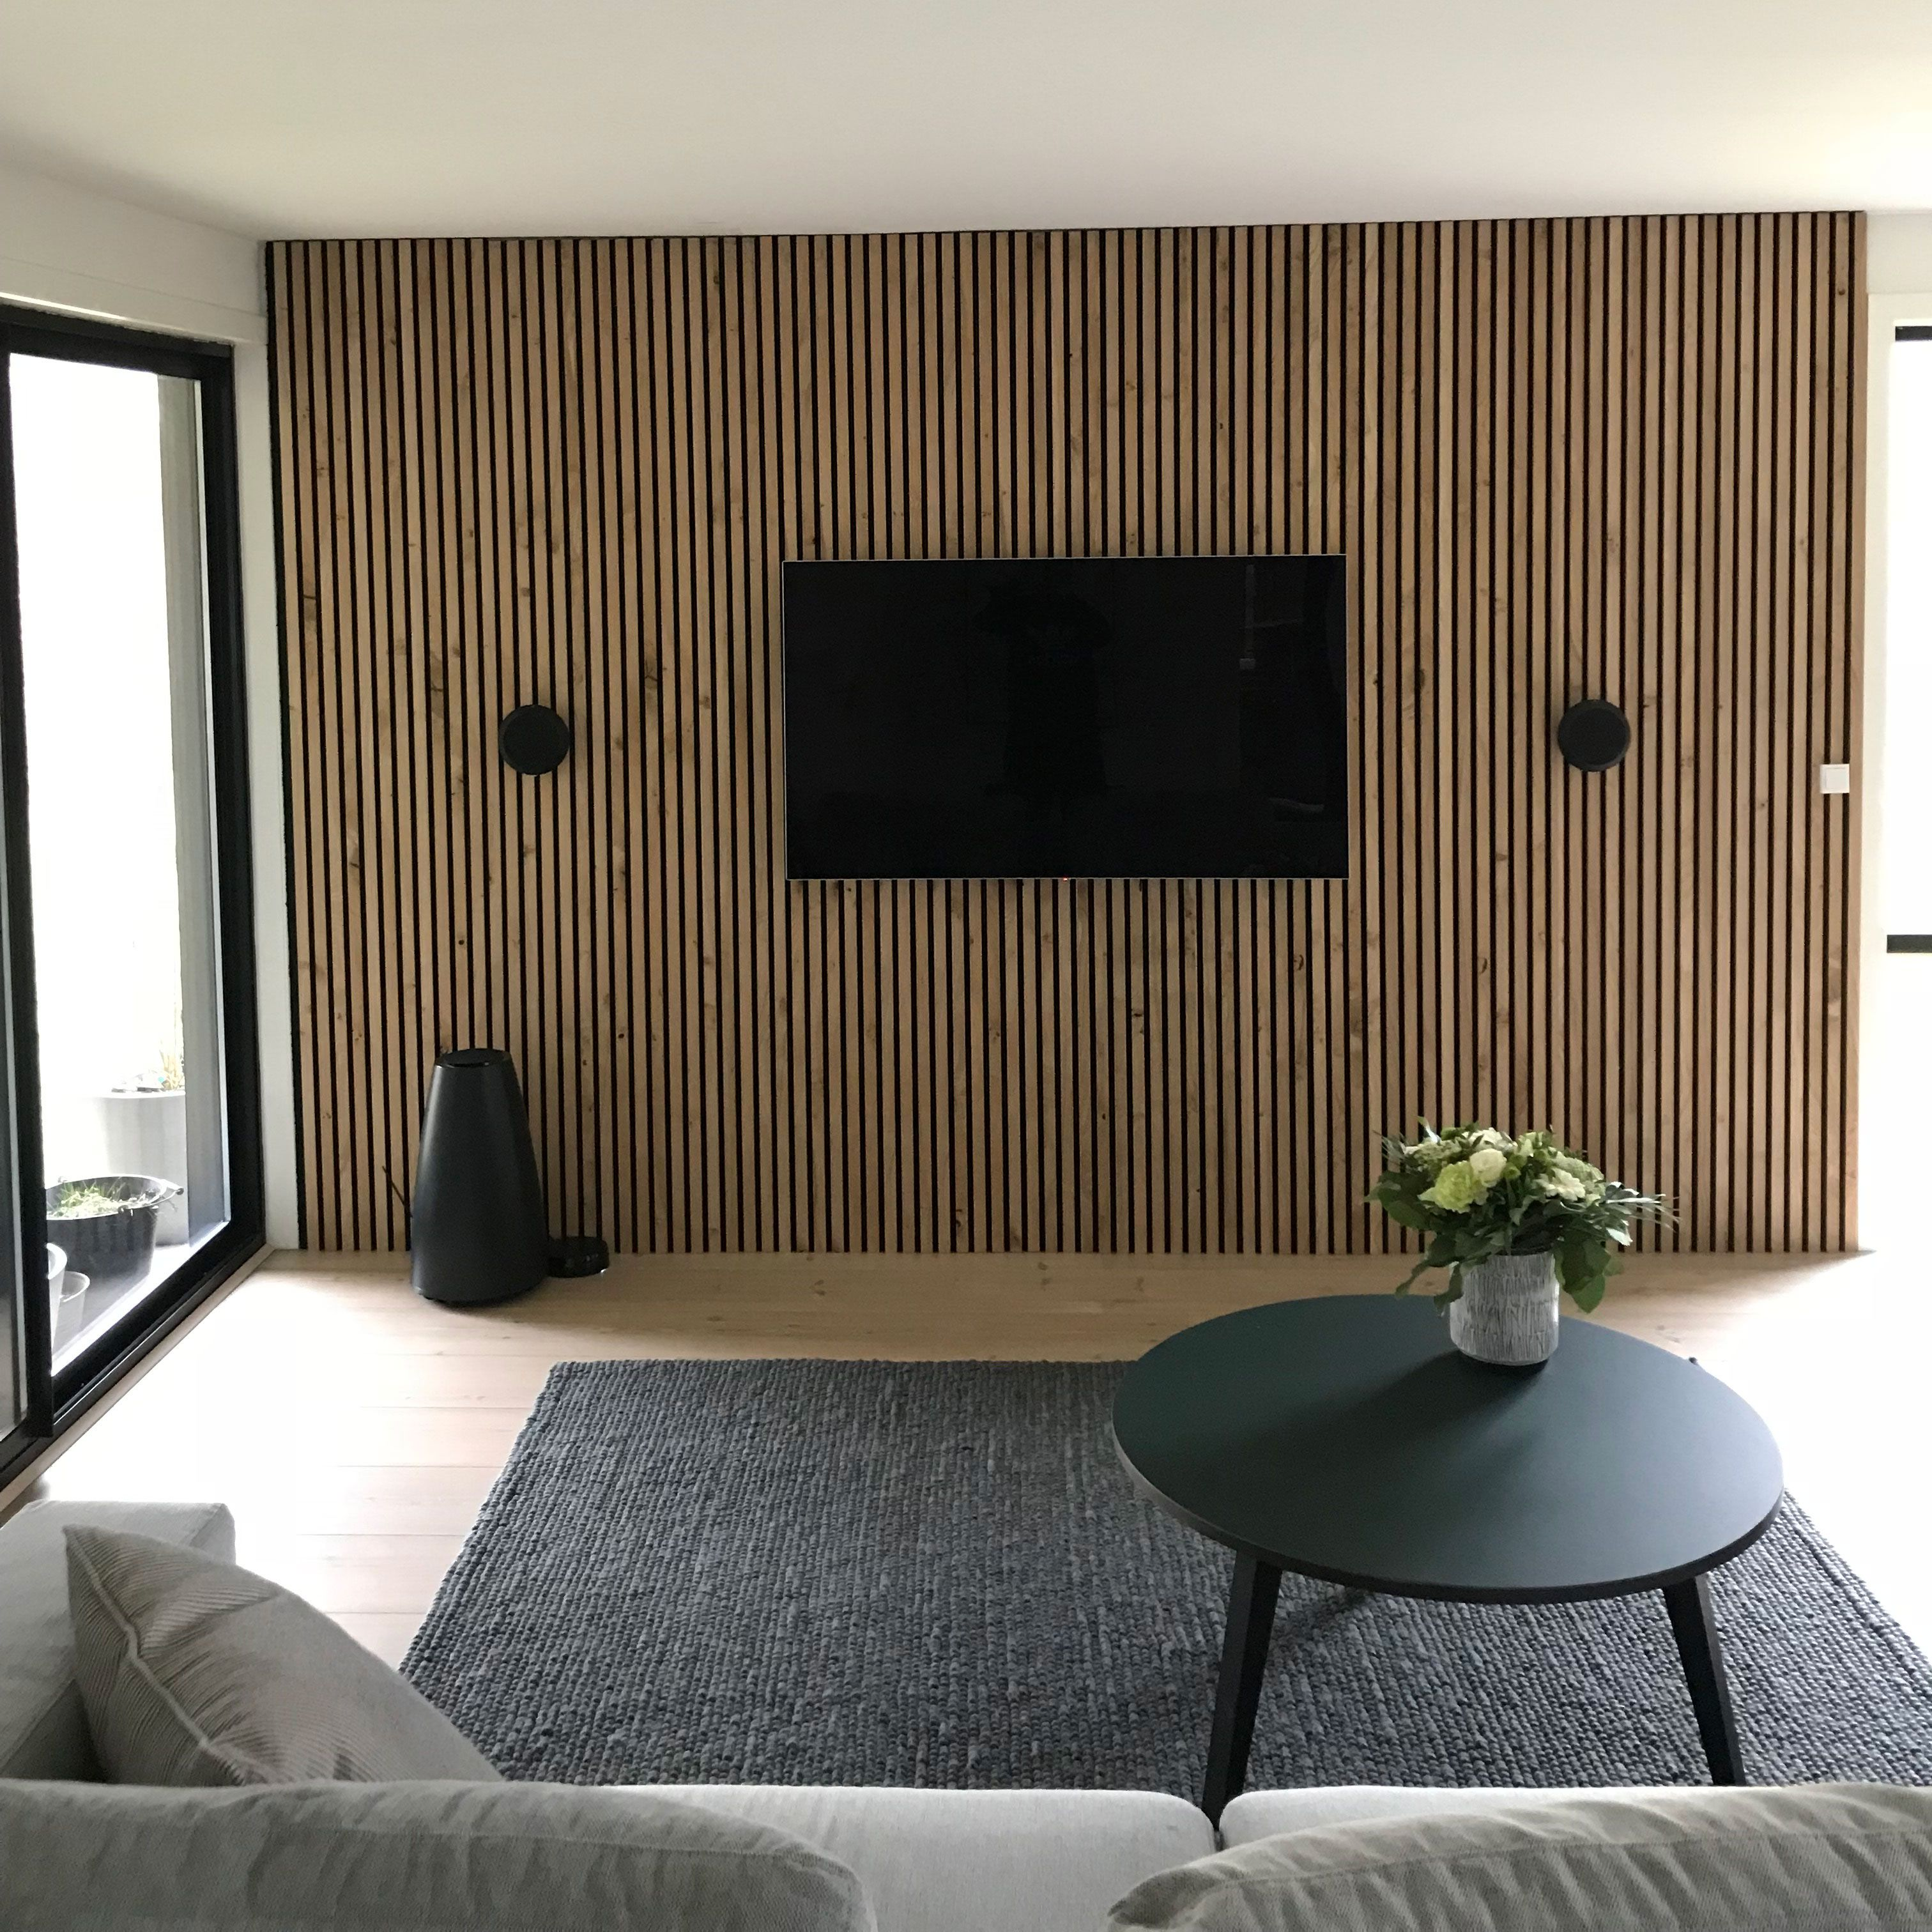 Classy Living Room With Acoustical Panels From Woodupp Home Room Design Creative Interior Design Home